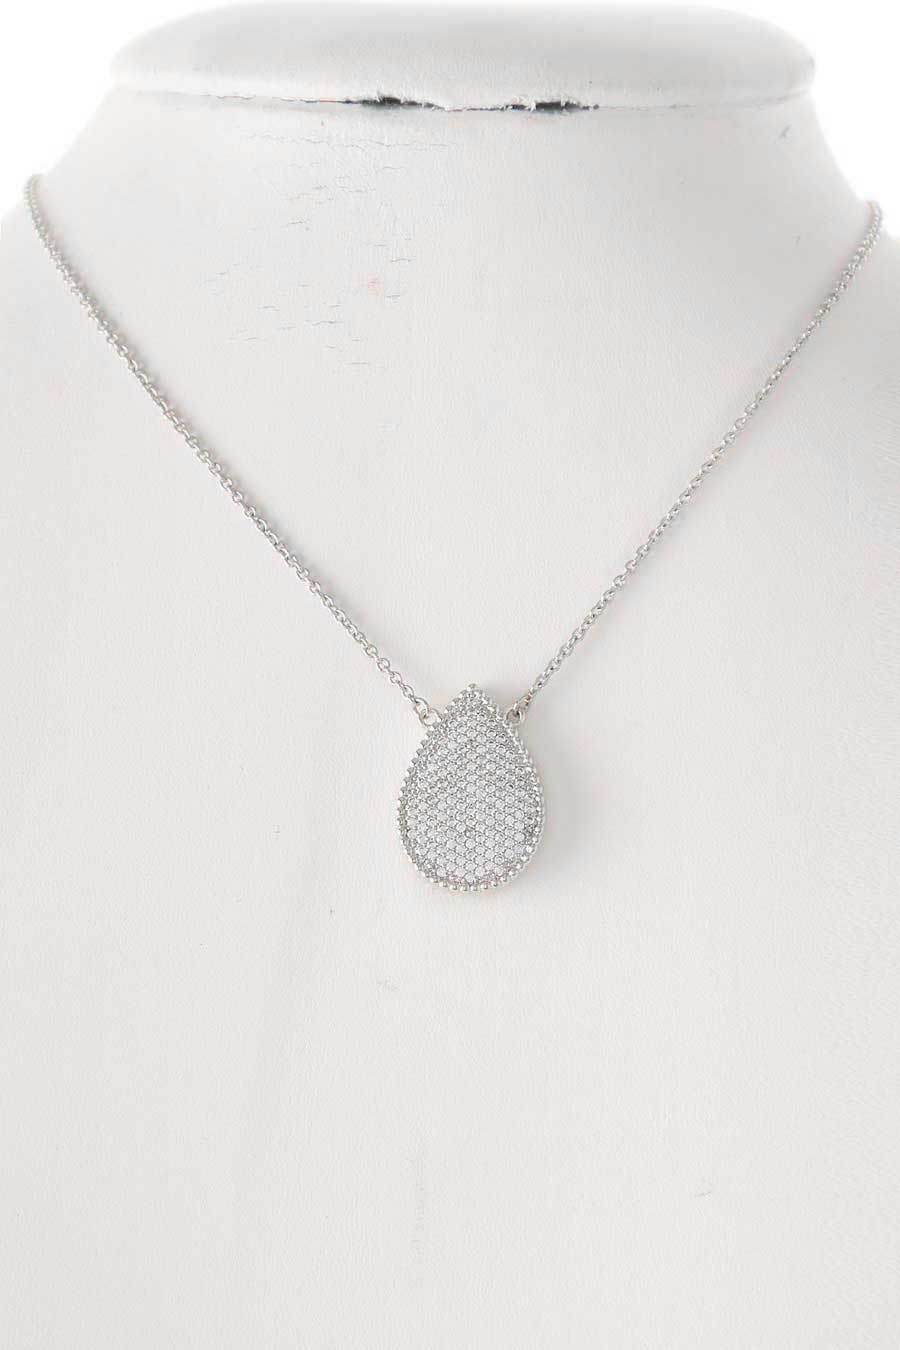 CZ PAVE PEARL PENDANT NECKLACE - orangeshine.com